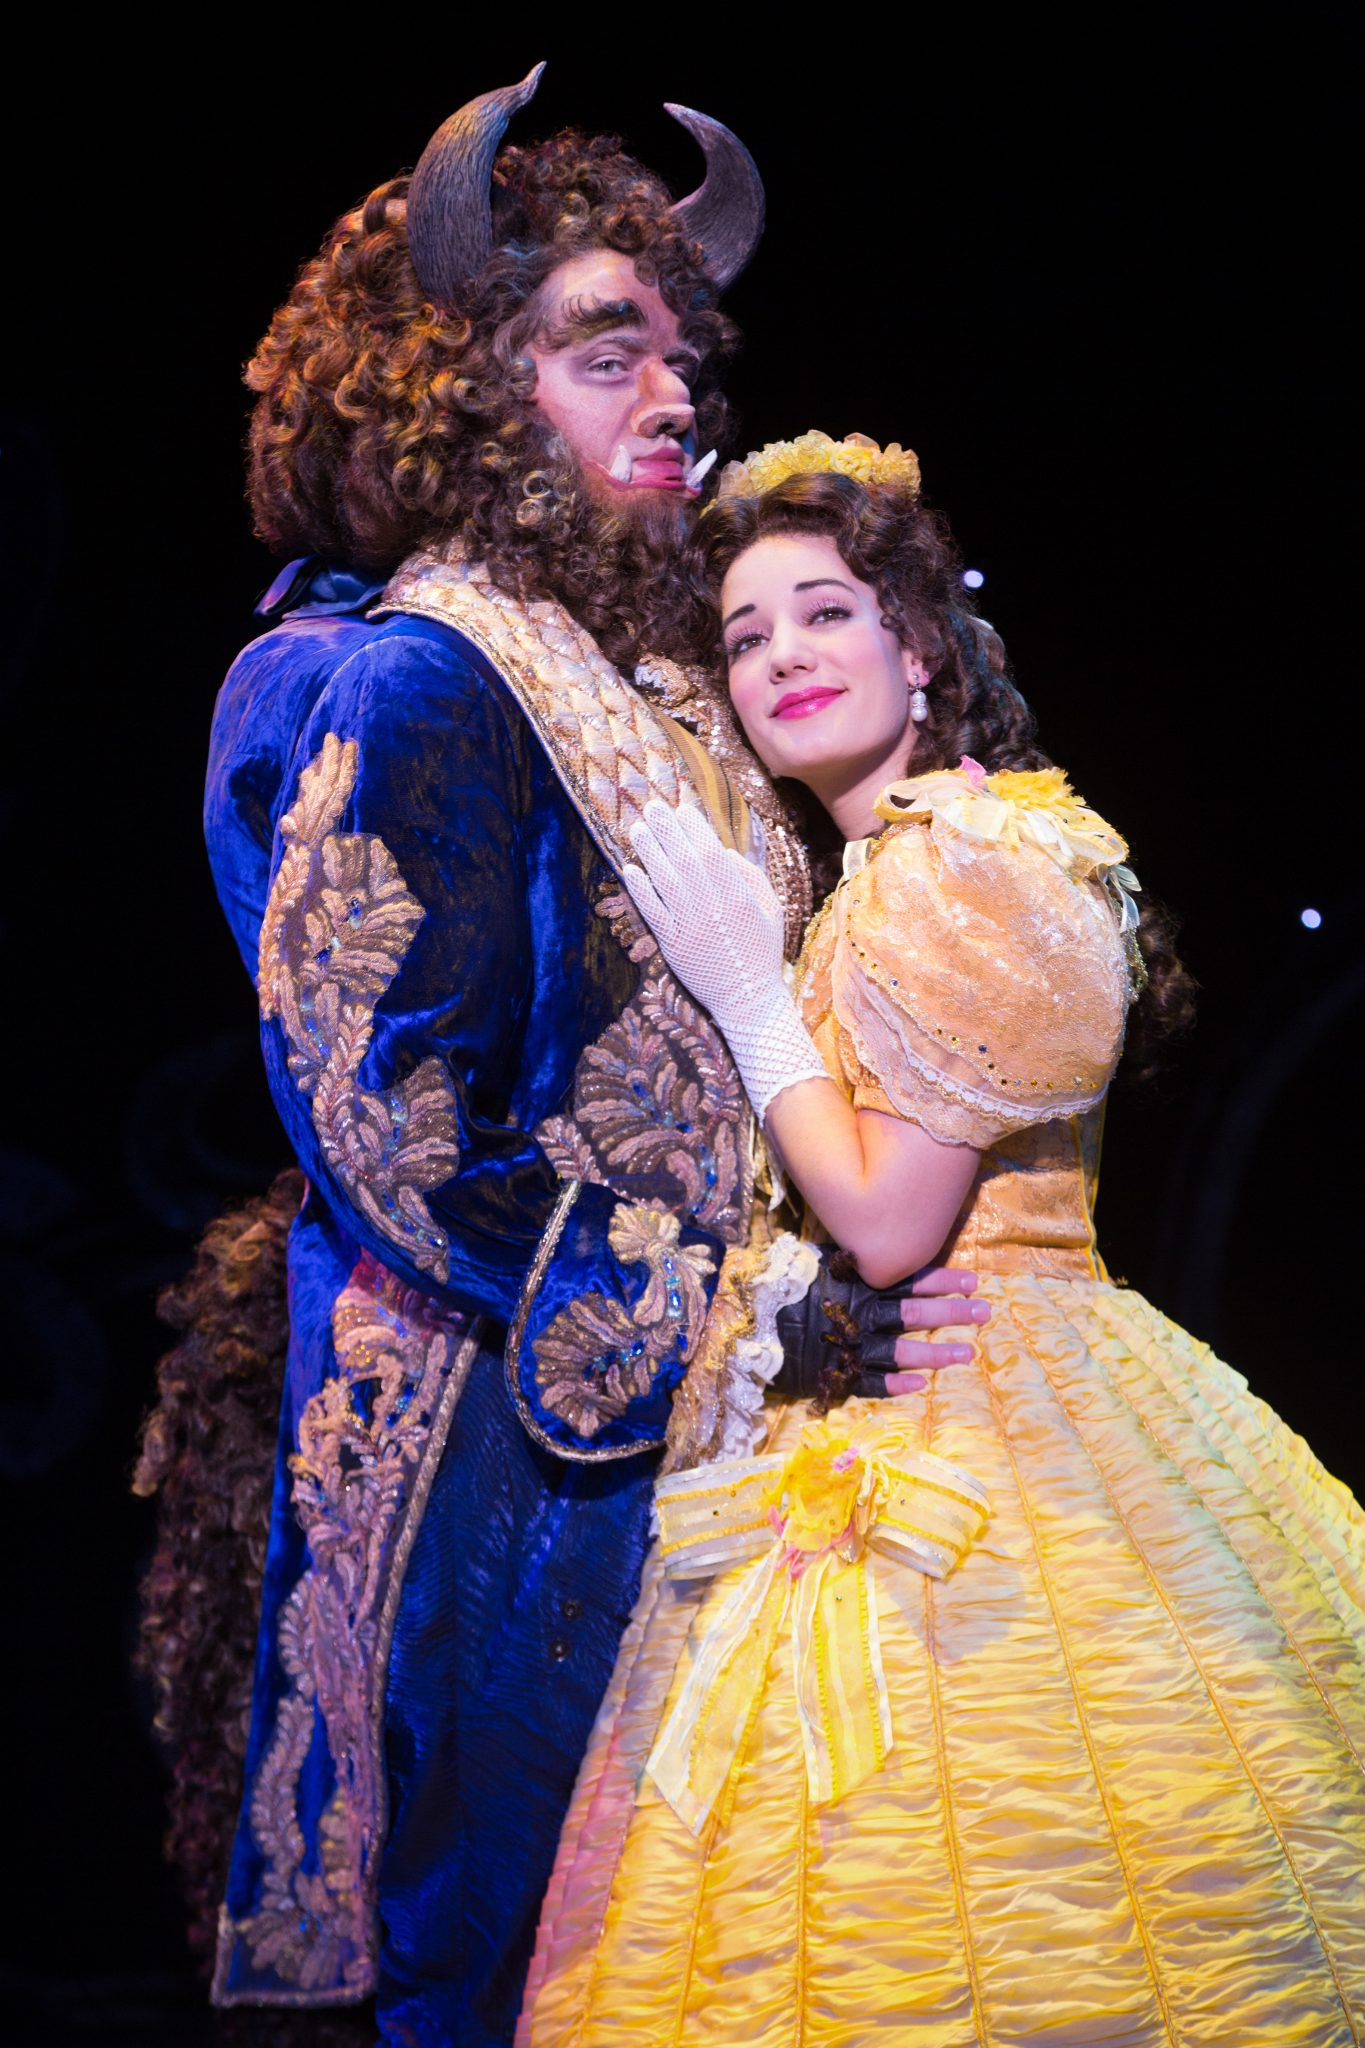 My Experience Seeing Disney's 'Beauty And The Beast'